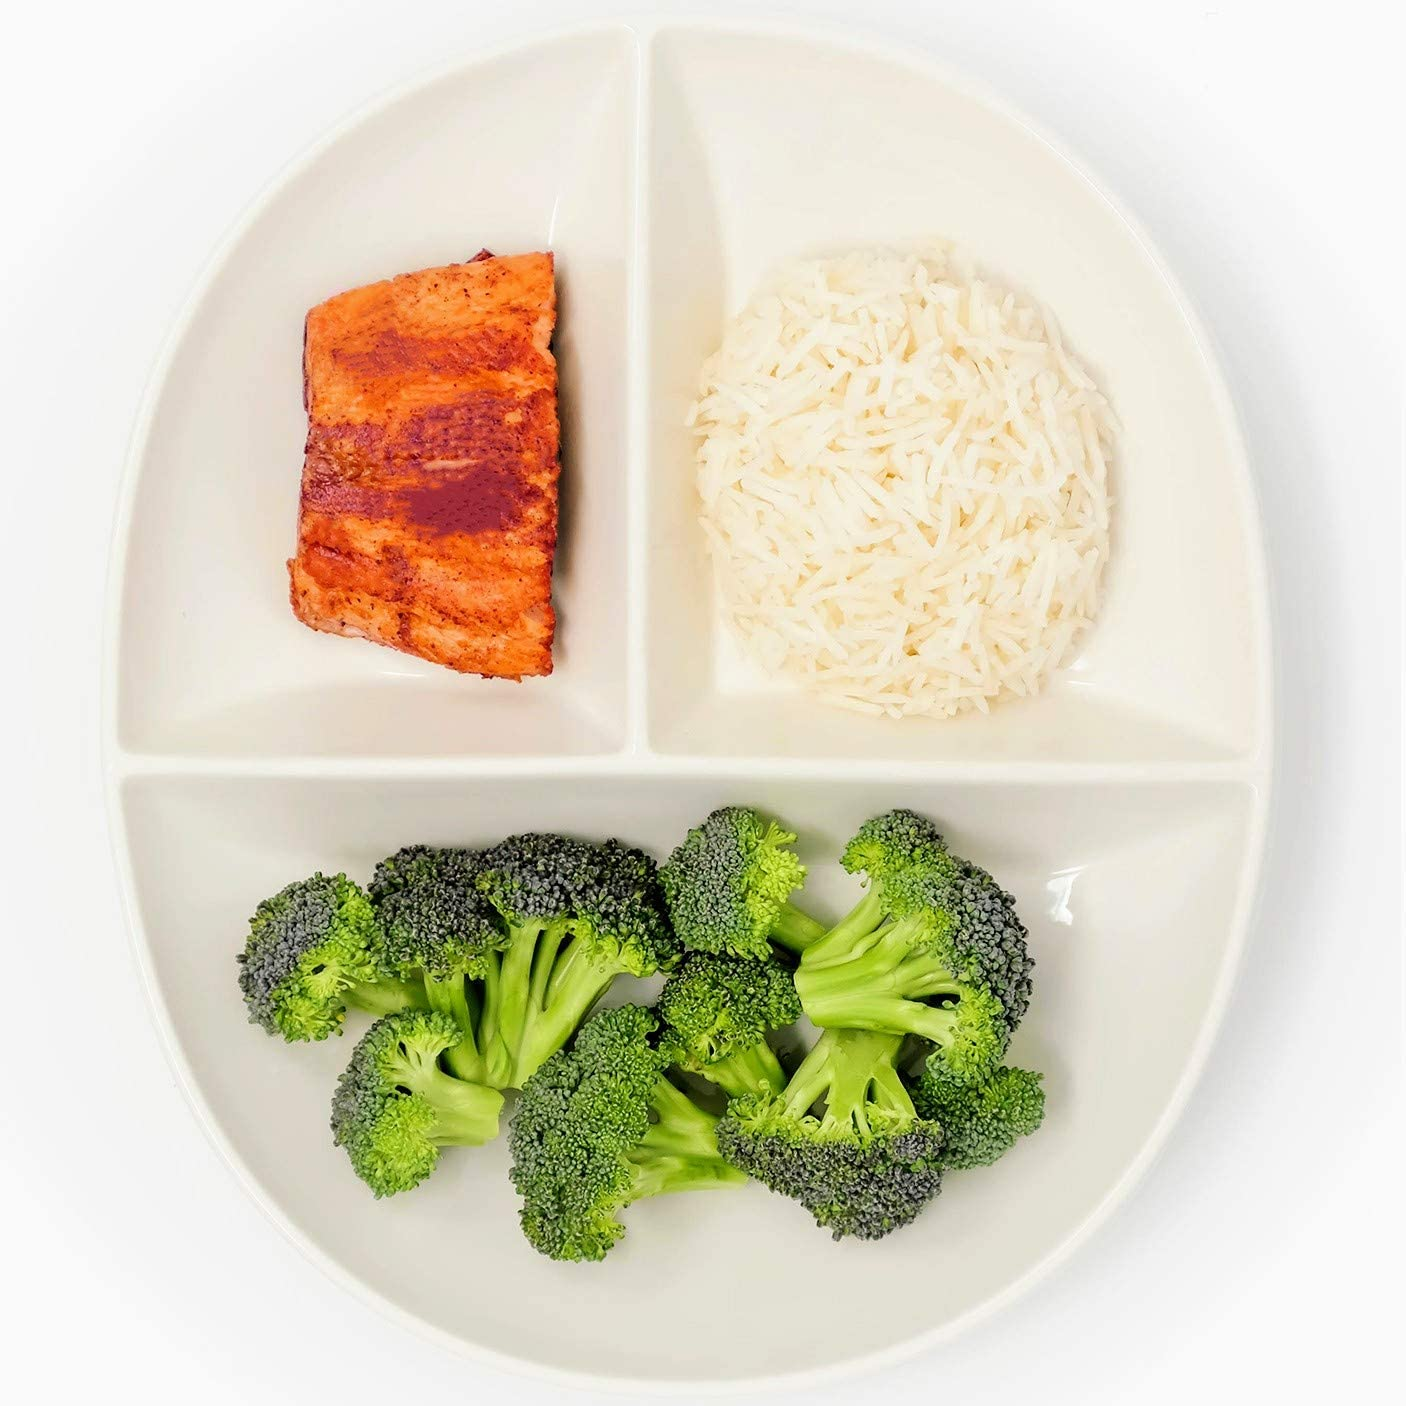 Portion Control Plate for Healthy Eating & Weight Loss  Divided Porcelain  Dinner Plate for Adults & Kids (6)